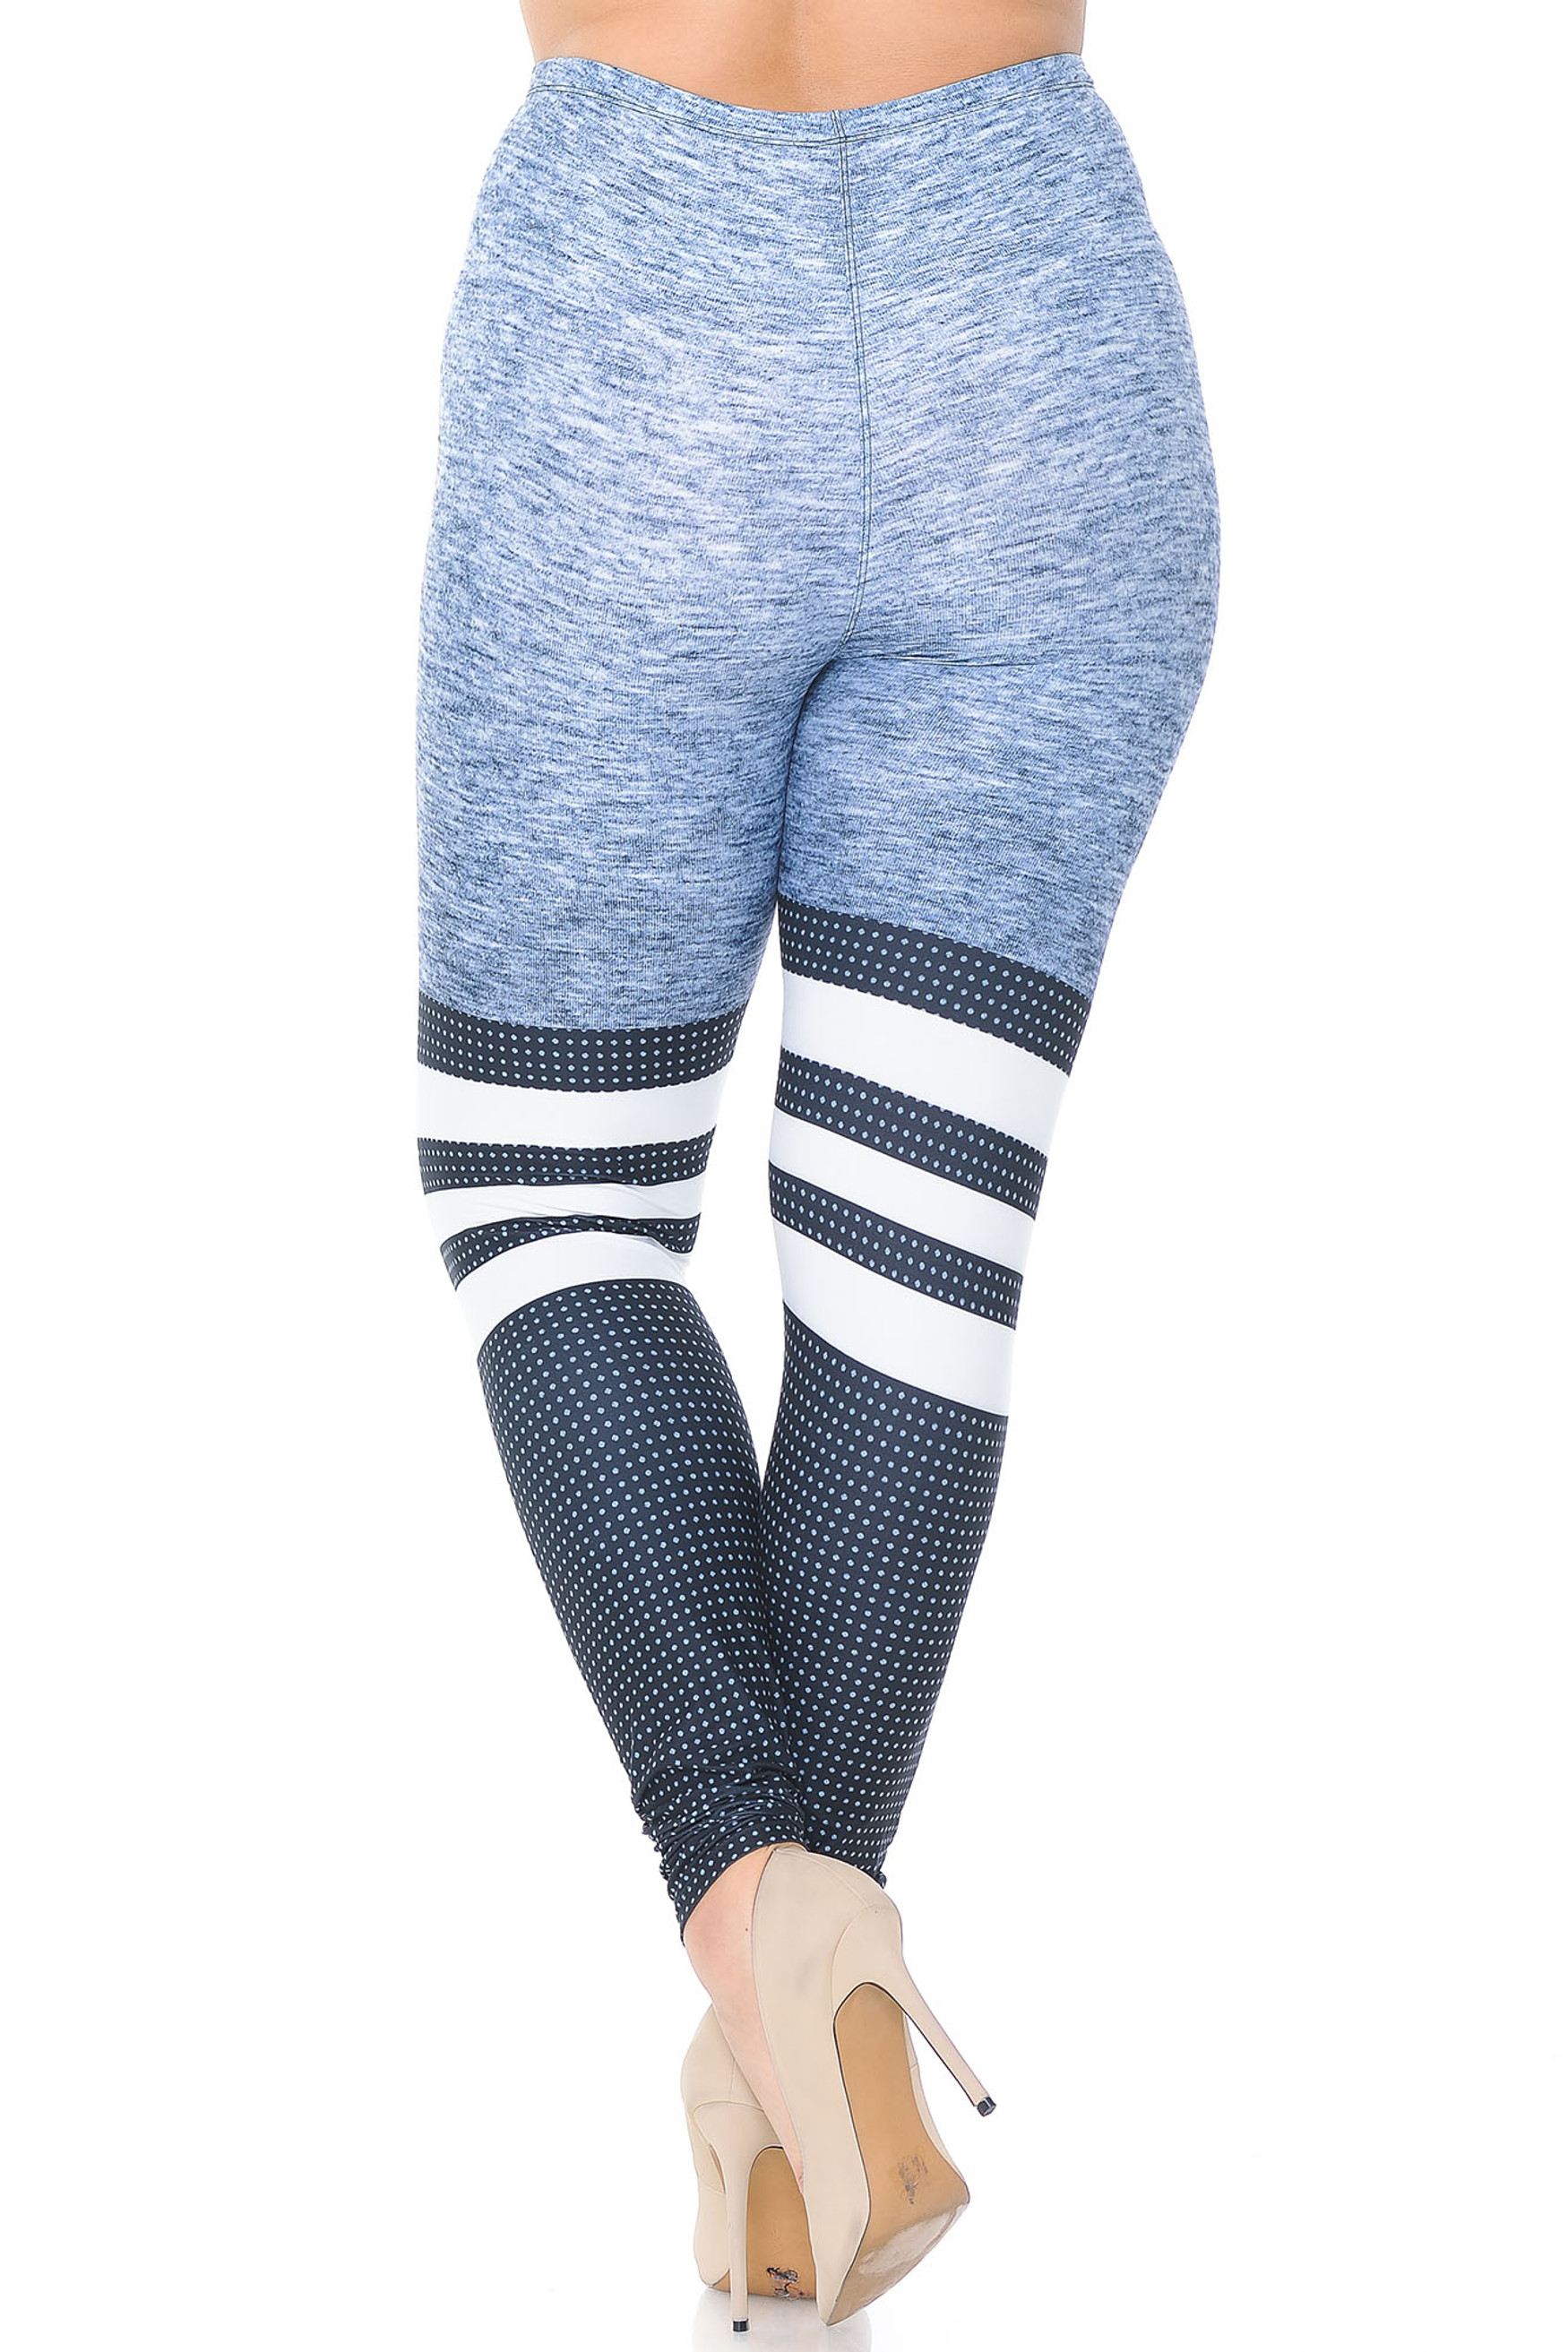 Creamy Soft Split Sport Extra Plus Size Leggings - 3X-5X - USA Fashion™